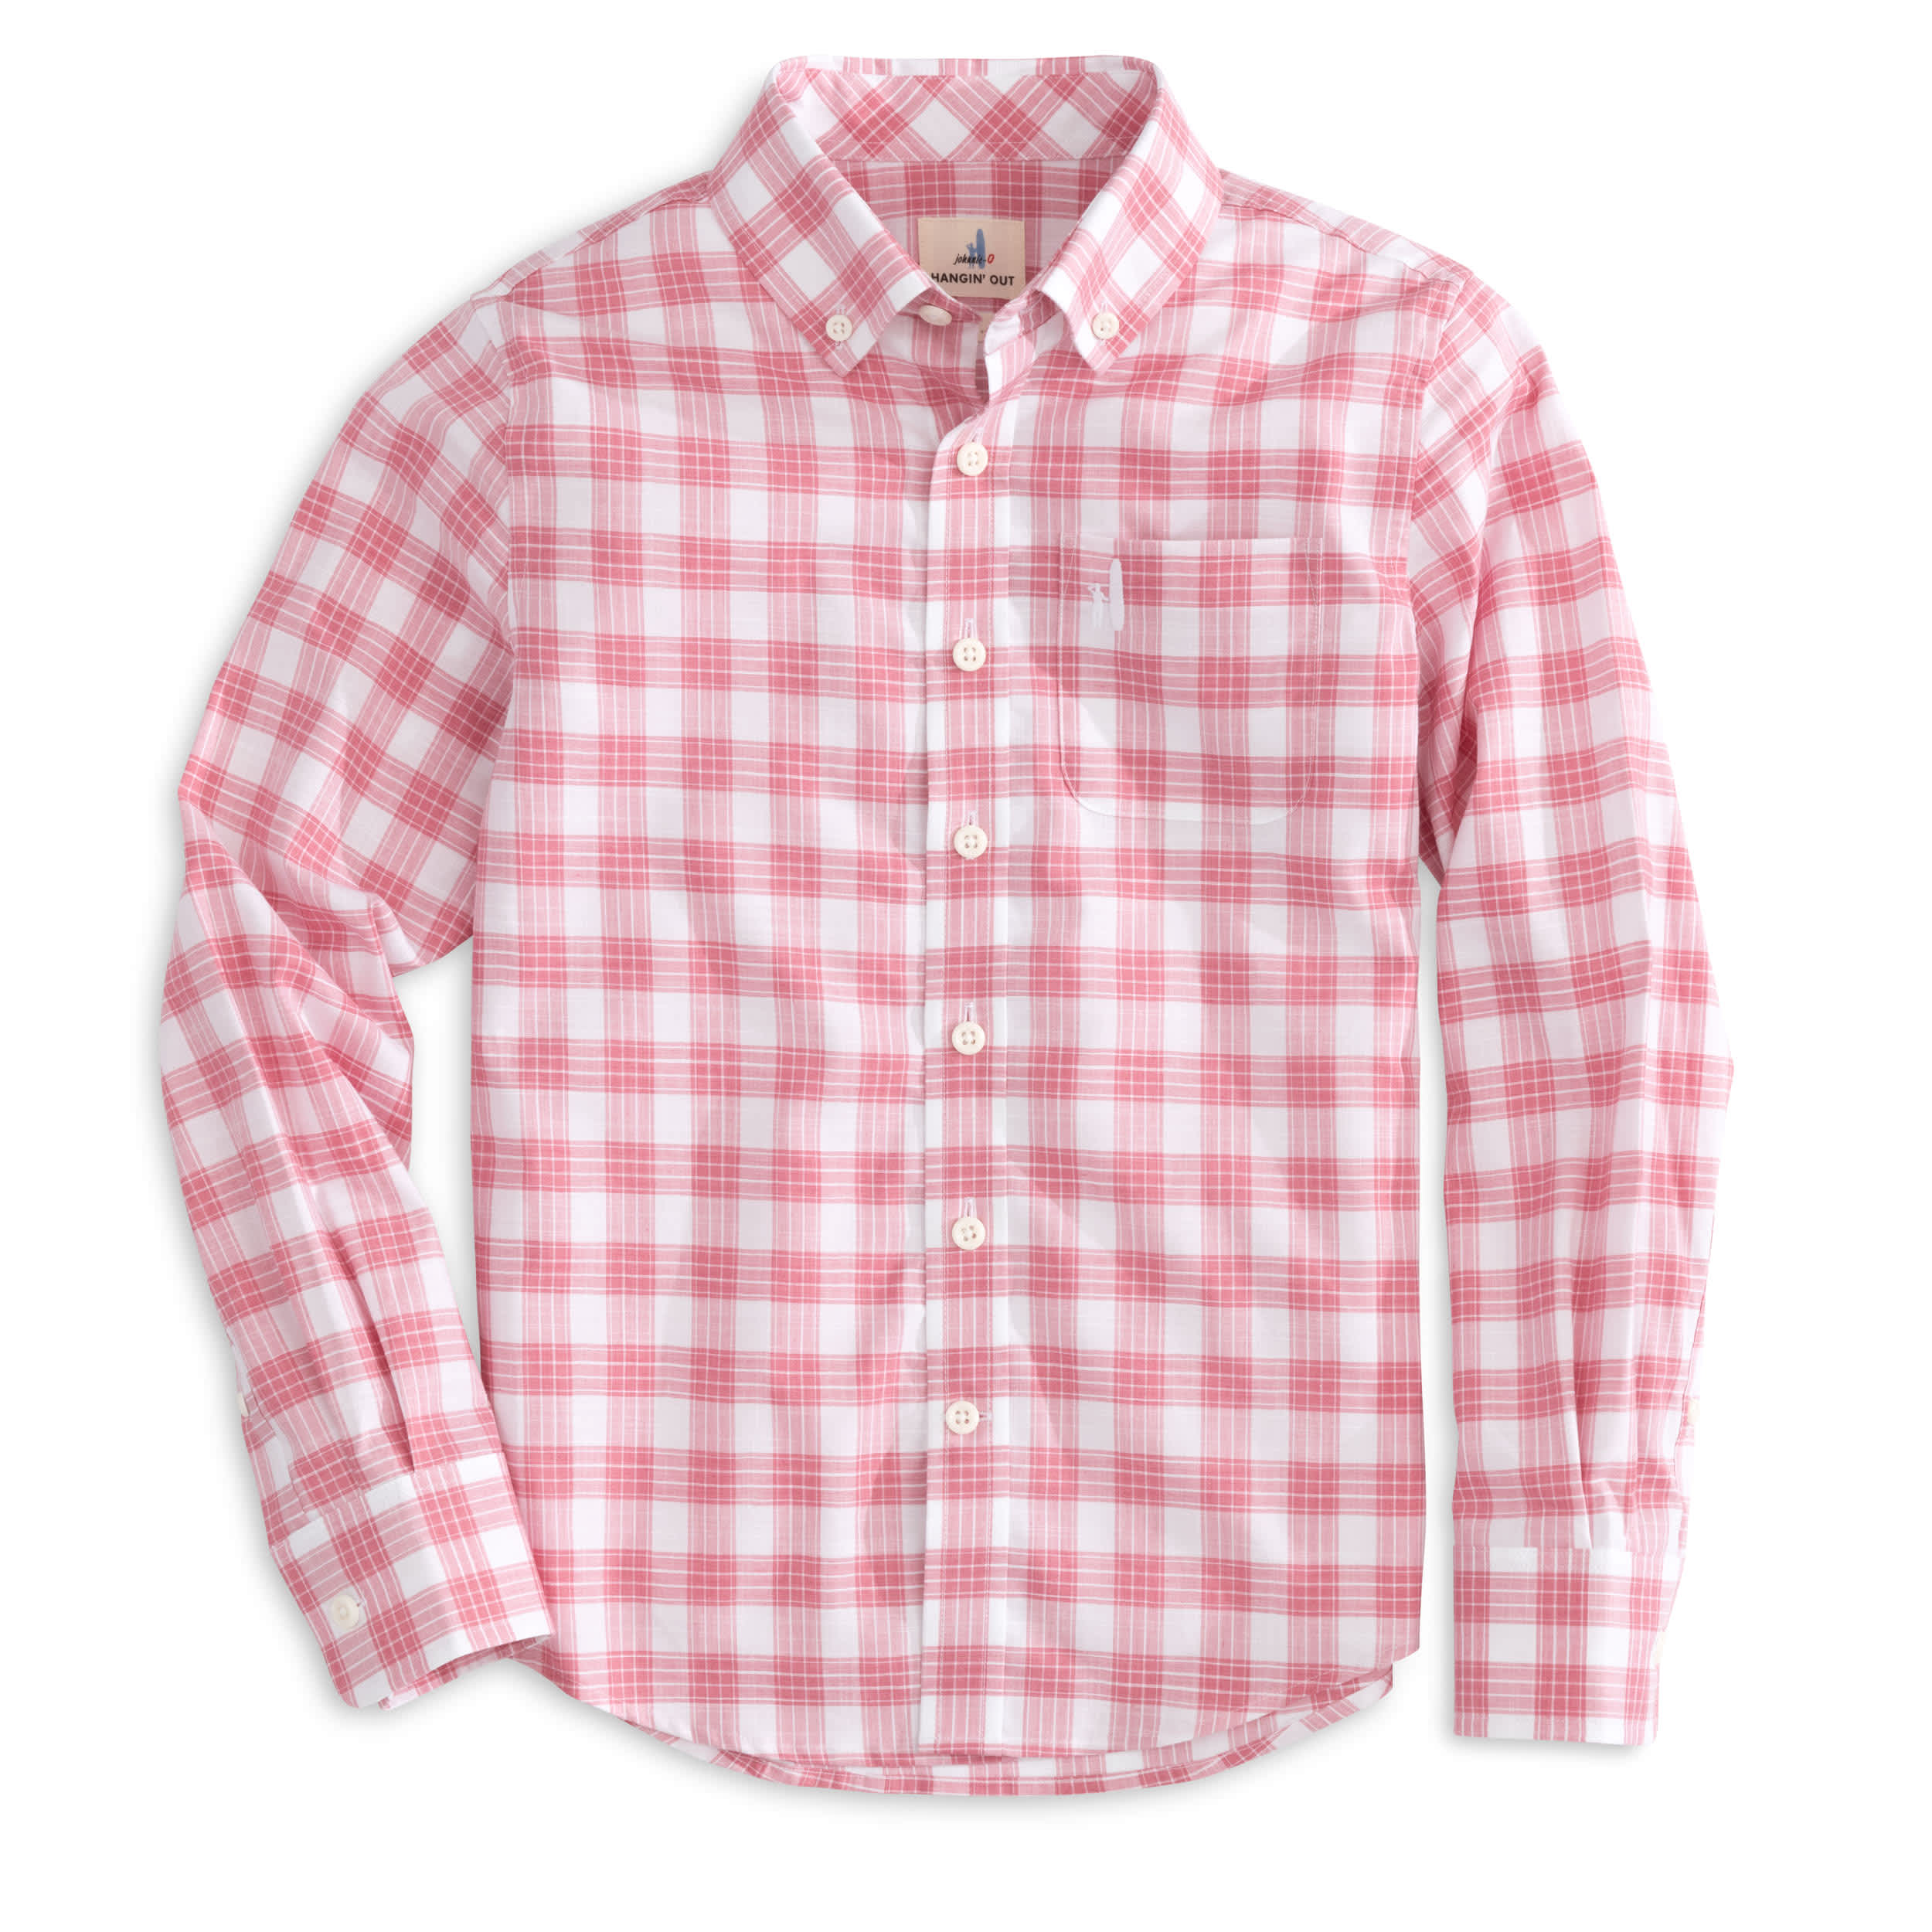 LANDON JR BUTTON DOWN SHIRT